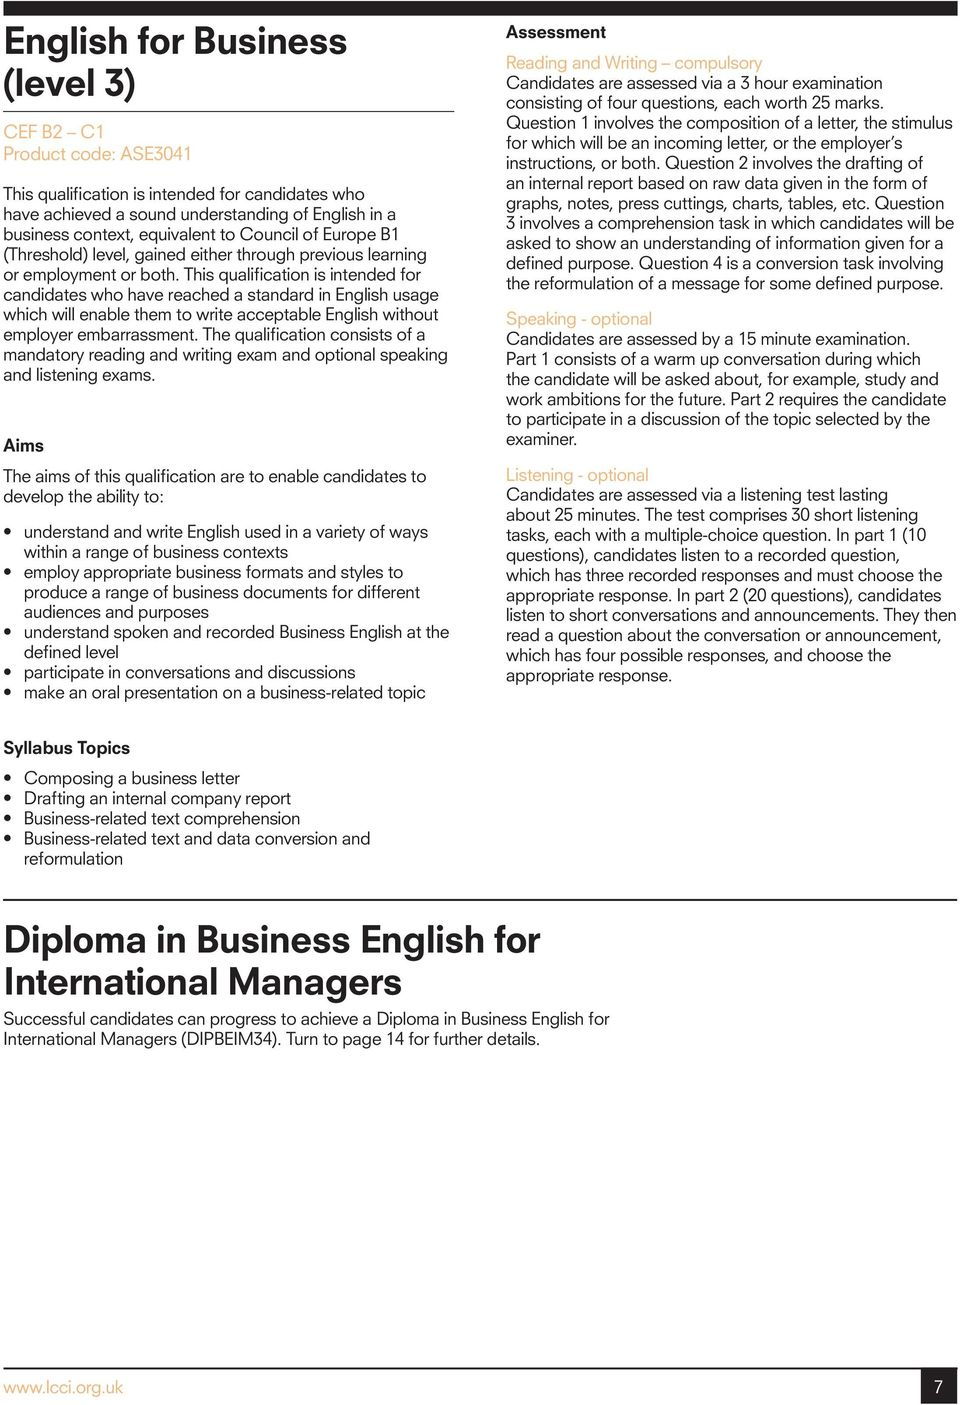 This qualification is intended for candidates who have reached a standard in English usage which will enable them to write acceptable English without employer embarrassment.